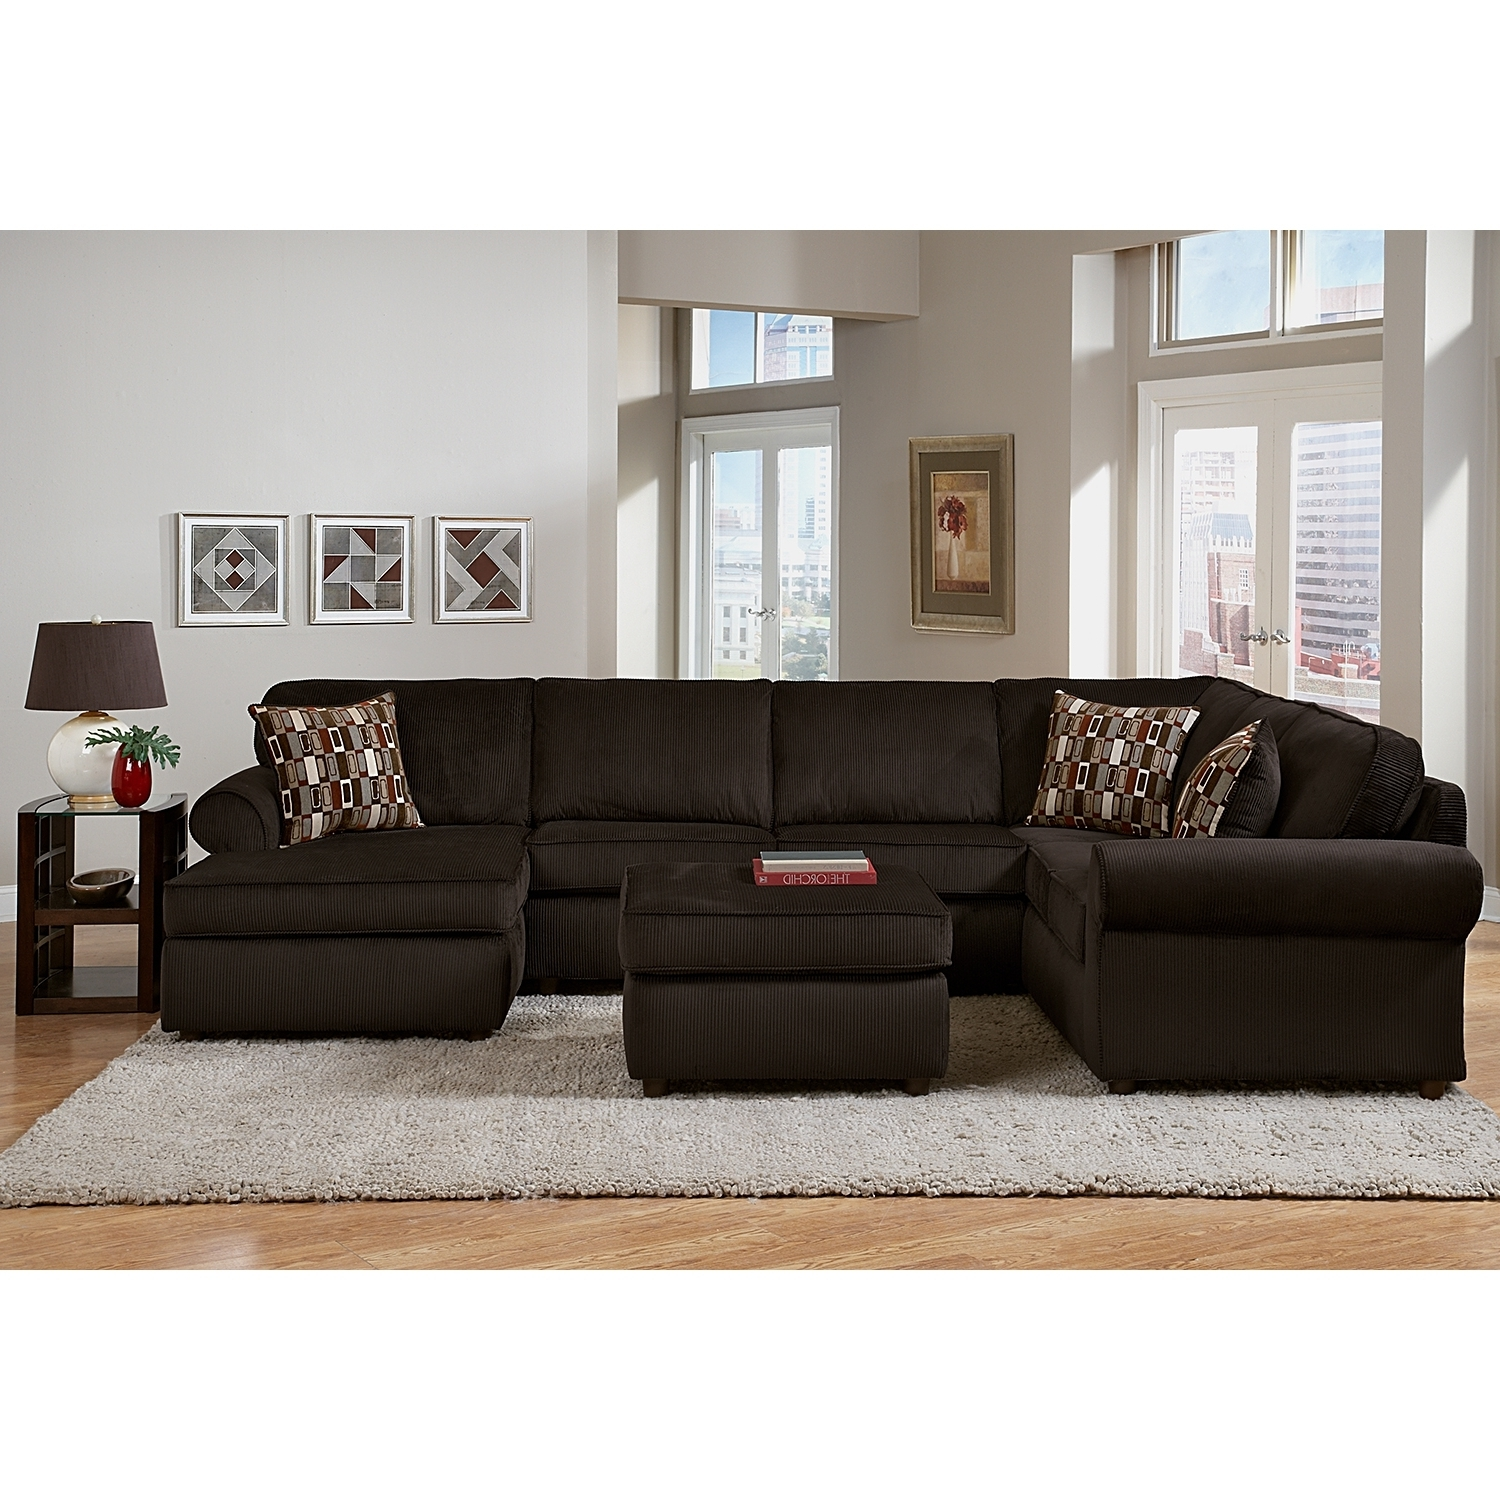 Wichita Ks Sectional Sofas With Regard To Most Recent Picture 5 Of 34 – Sectional Sofas Sale Luxury Stunning Value City (View 12 of 15)